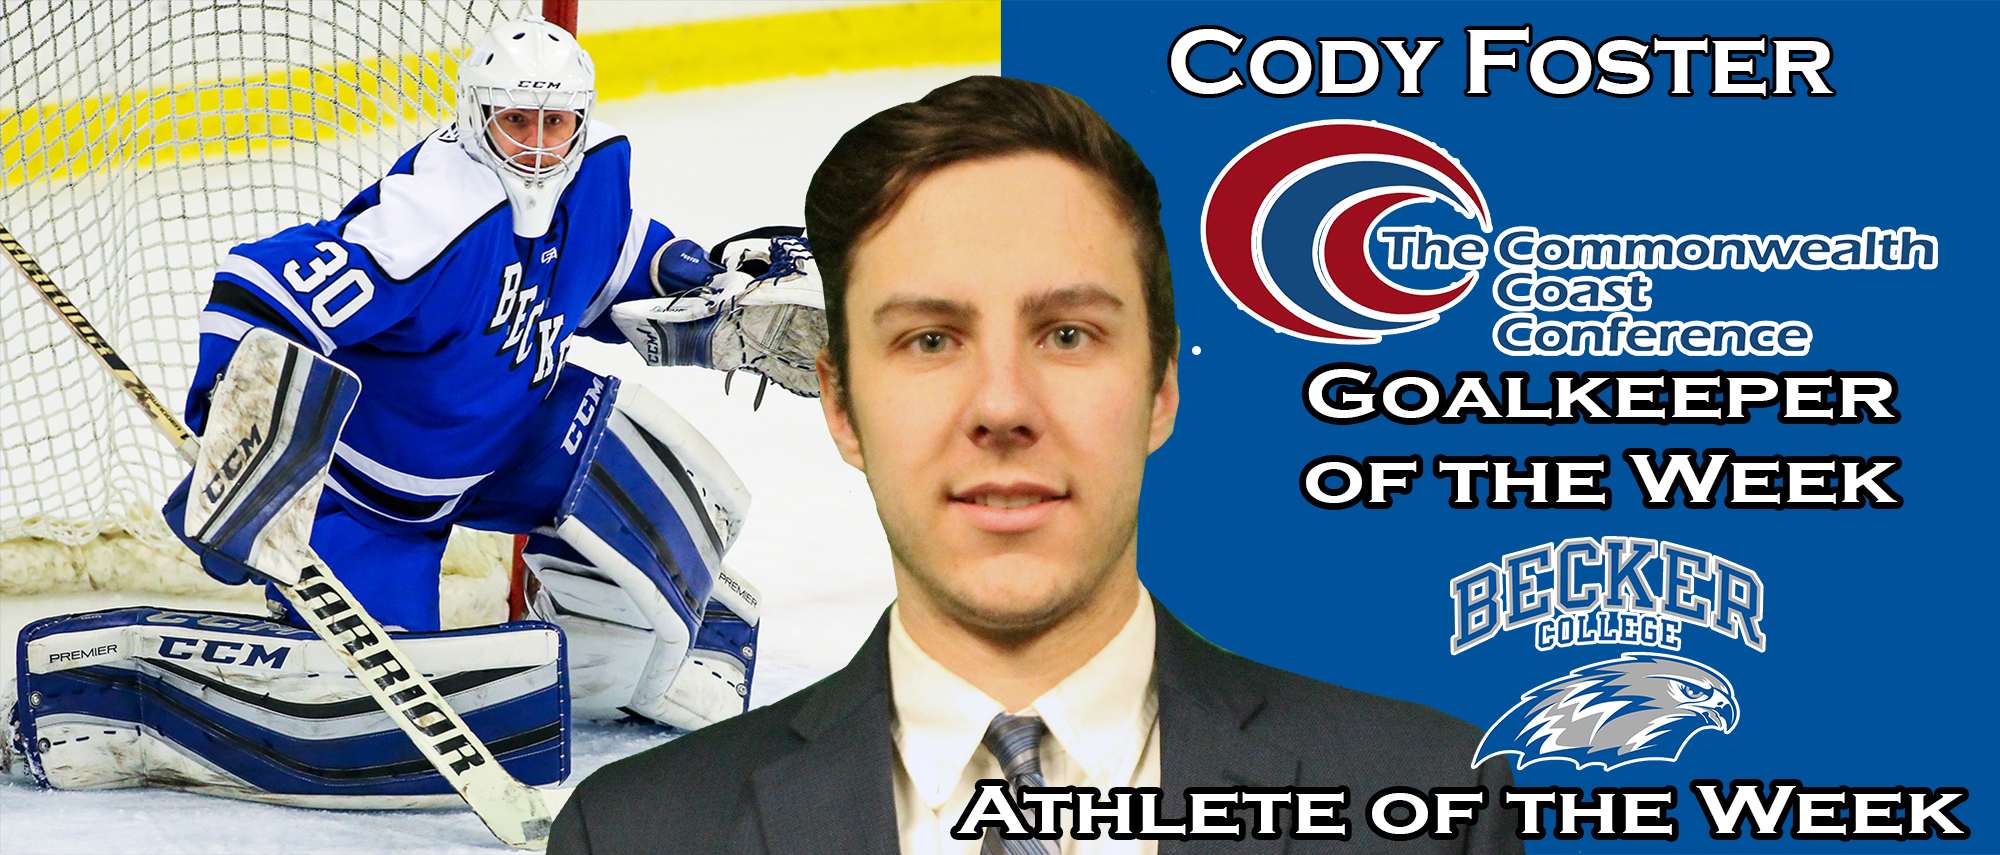 Cody Foster - CCC Goalkeeper of the Week